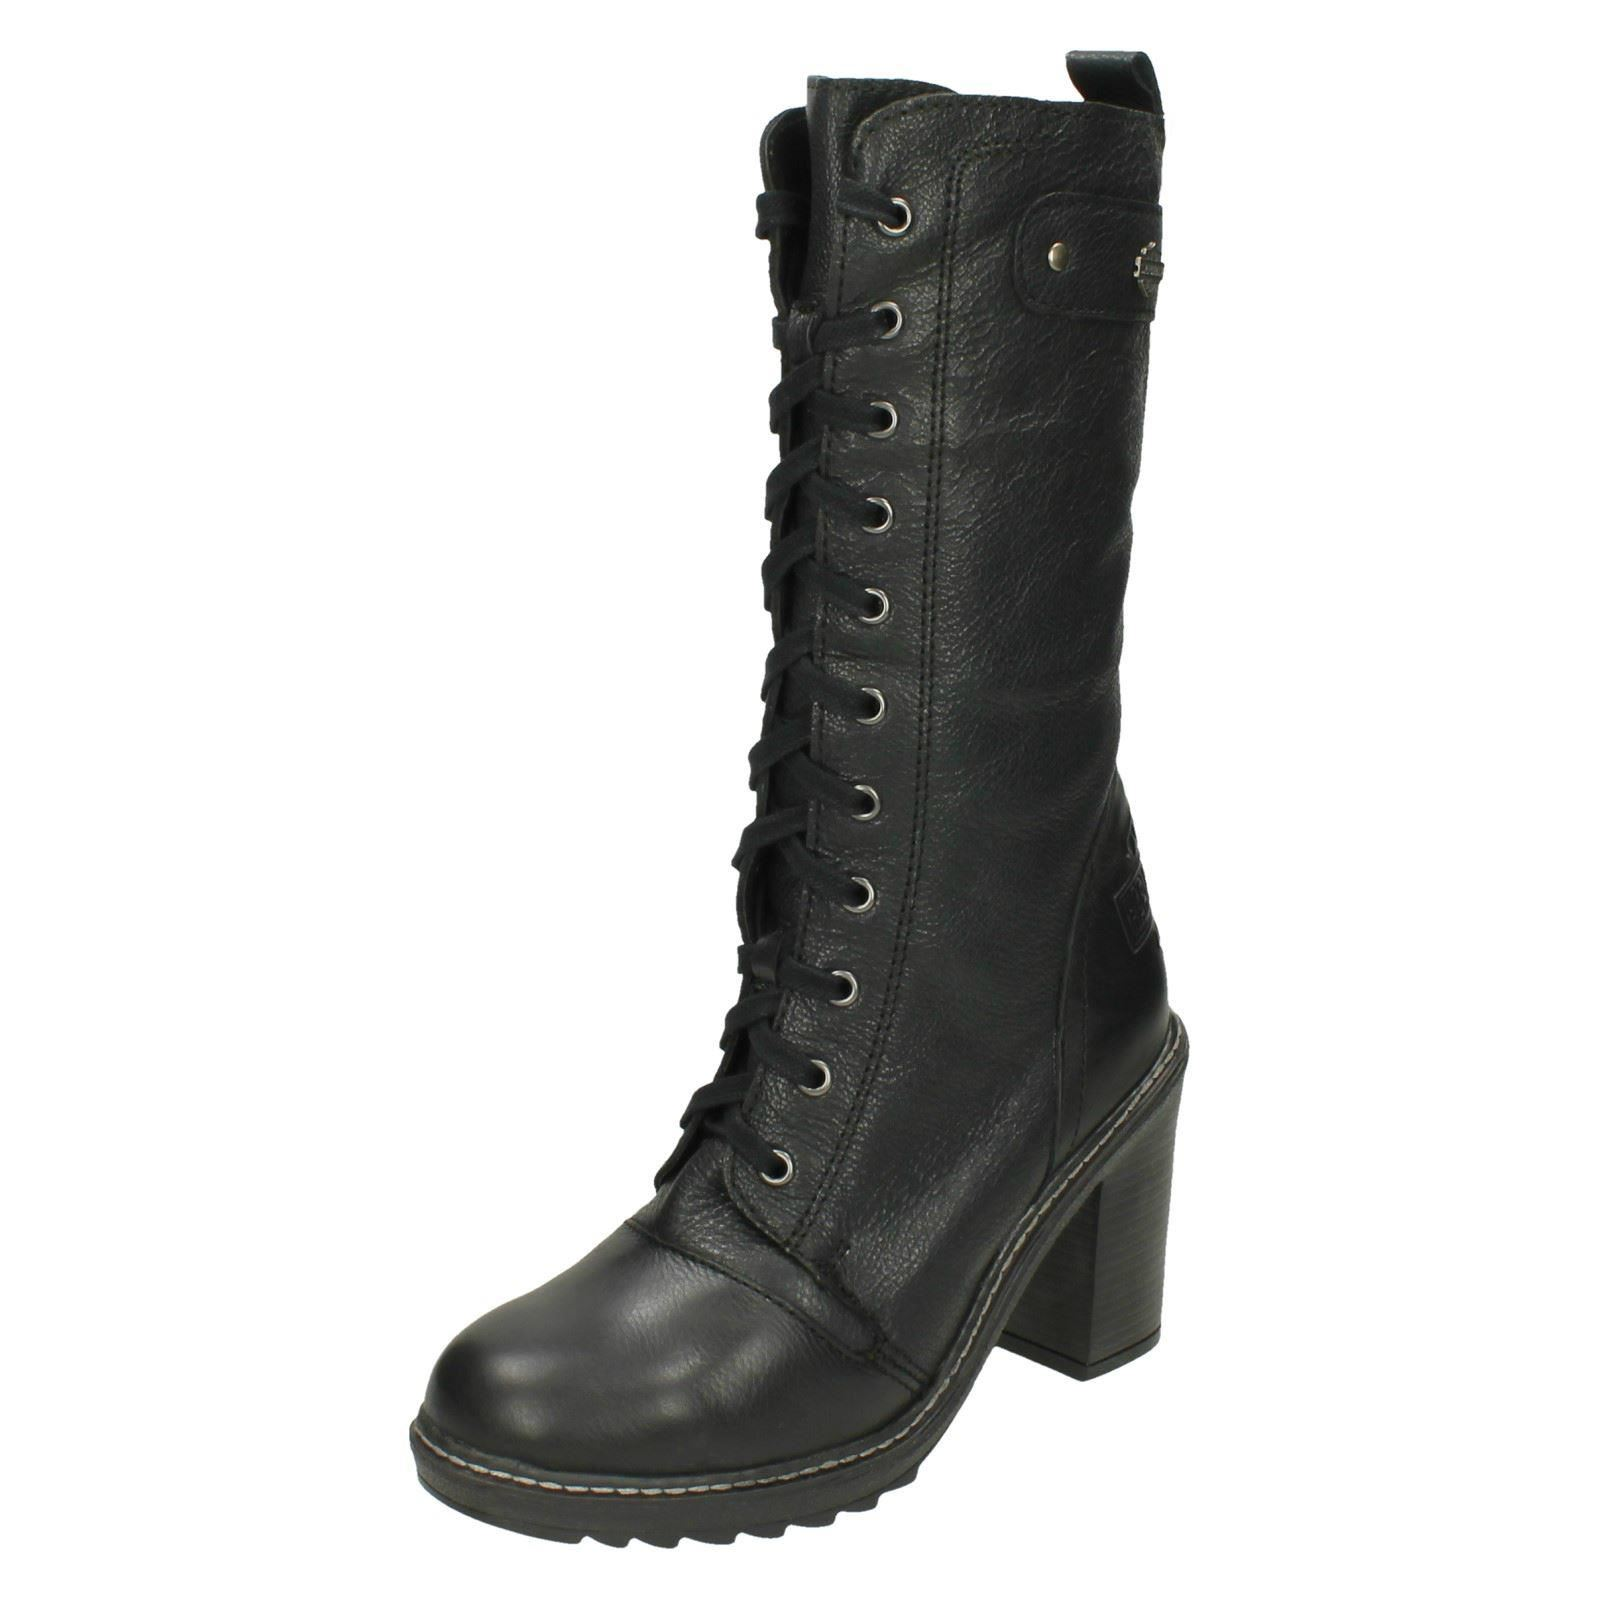 Ladies-Harley-Davidson-Heeled-Leather-Boots-039-Lunsford-039